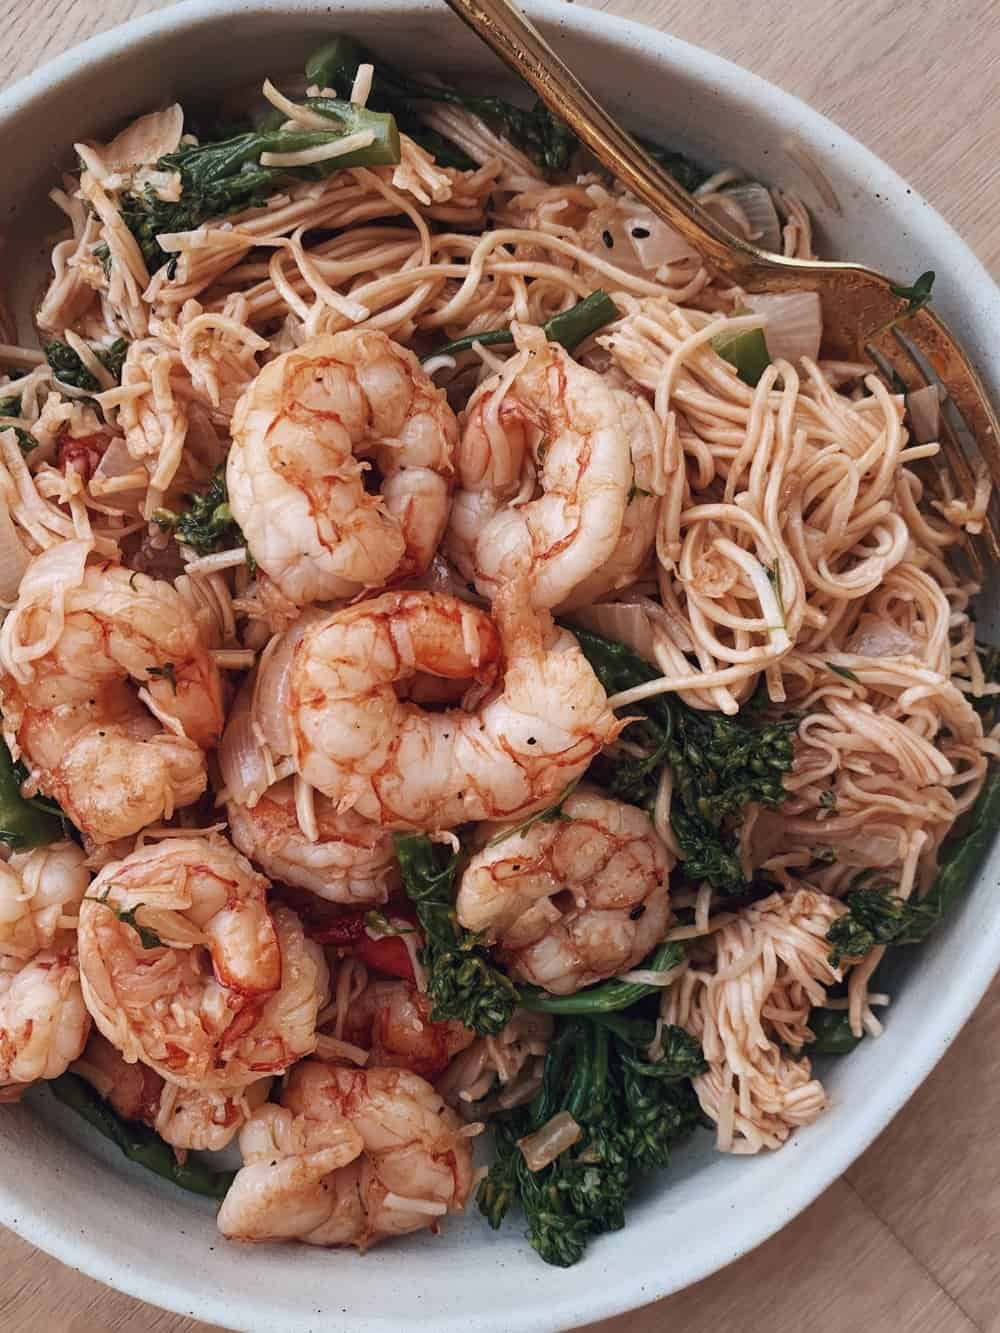 BROCCOLI SHRIMP RAMEN - INGREDIENTS1 1/2 pounds wild caught shrimp2 cups broccoli florets1/2 onion, roughly chopped4 cloves garlic, mashed2 tb olive oil (or avocado oil)2 tb coconut aminos (or 1 tb soy sauce)3 packages Mike's Mighty Good ramen (discard the flavor packets for this recipe)3/4 cup water (or vegetable broth or bone broth)